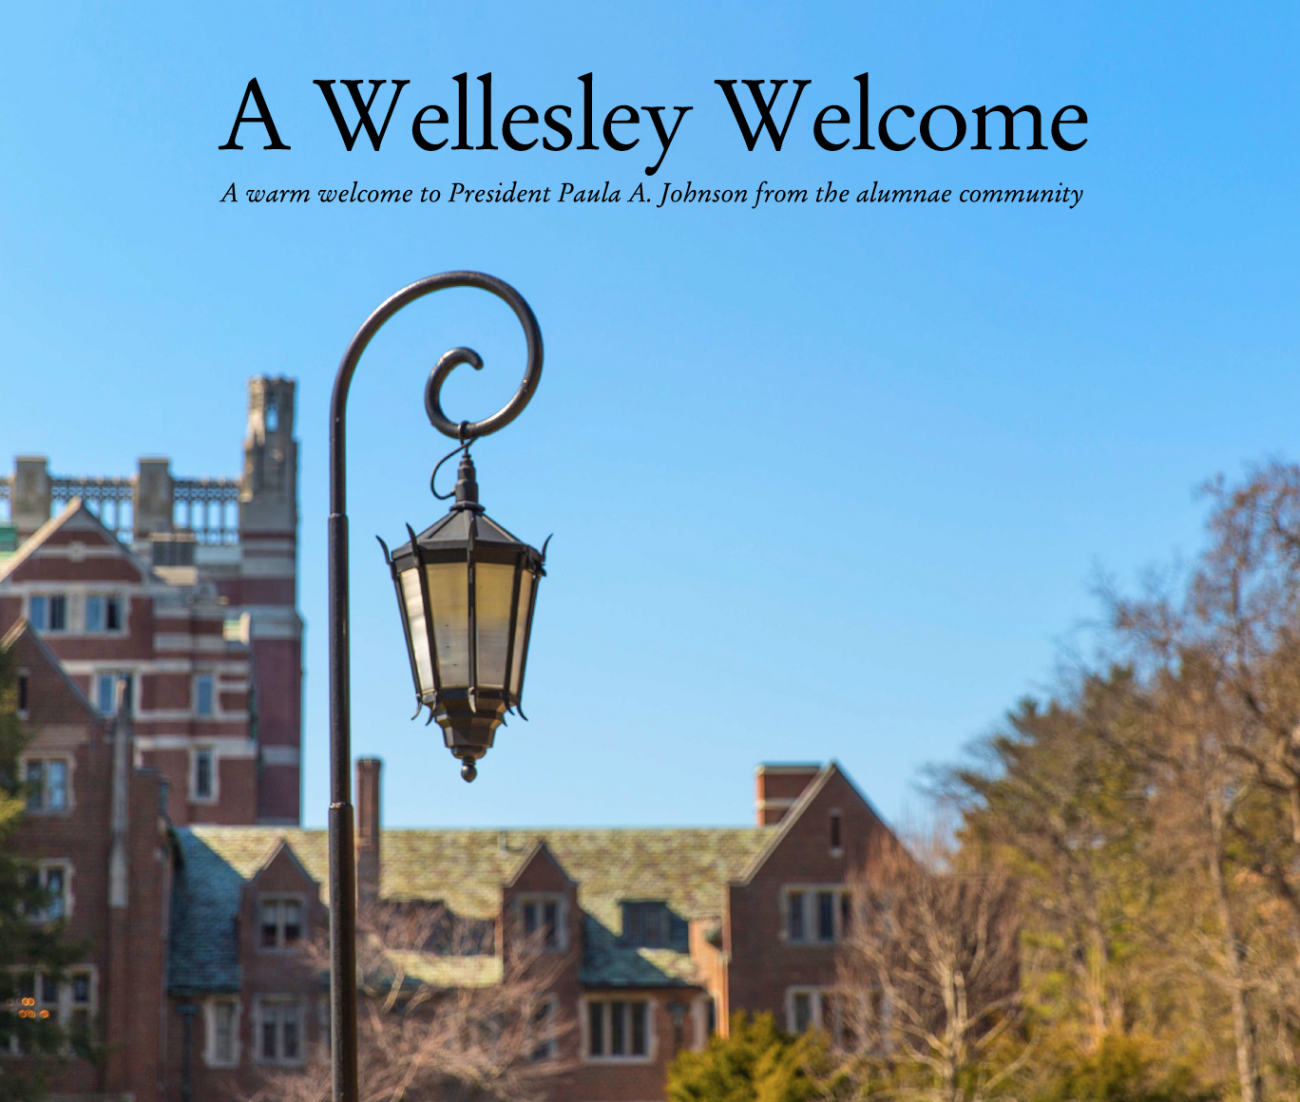 A Wellesley Welcome